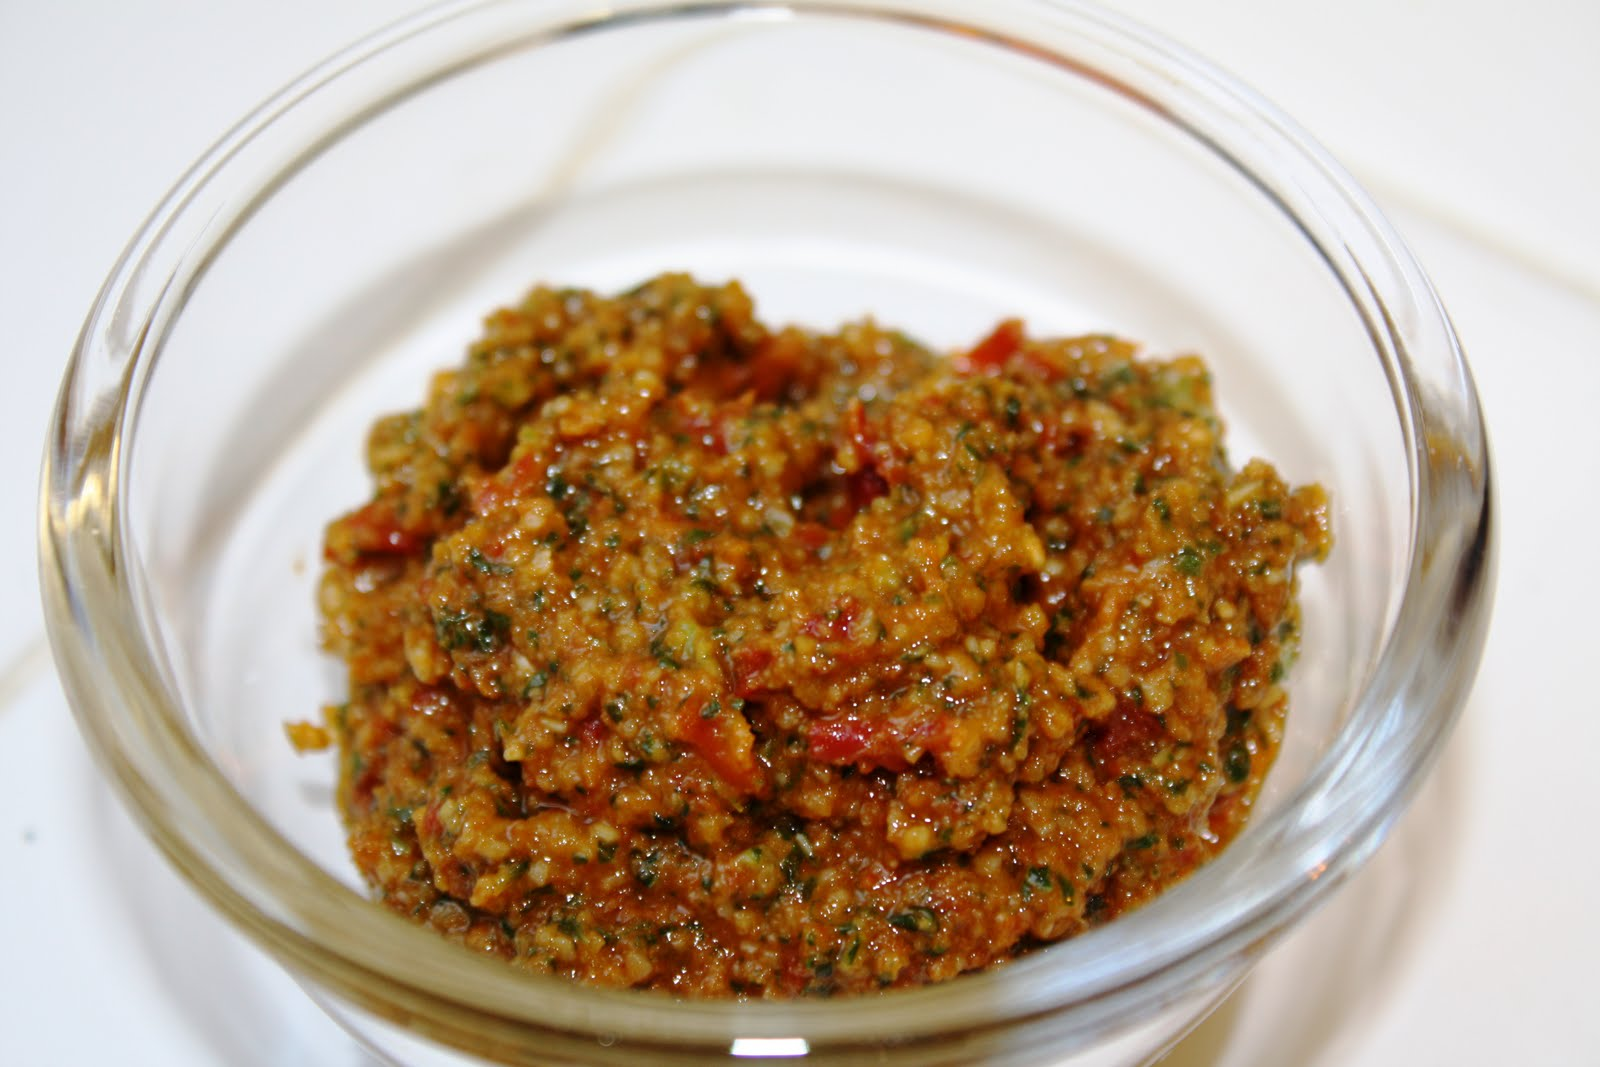 the traditional pesto recipe contains sun-dried tomatoes. The tomato ...